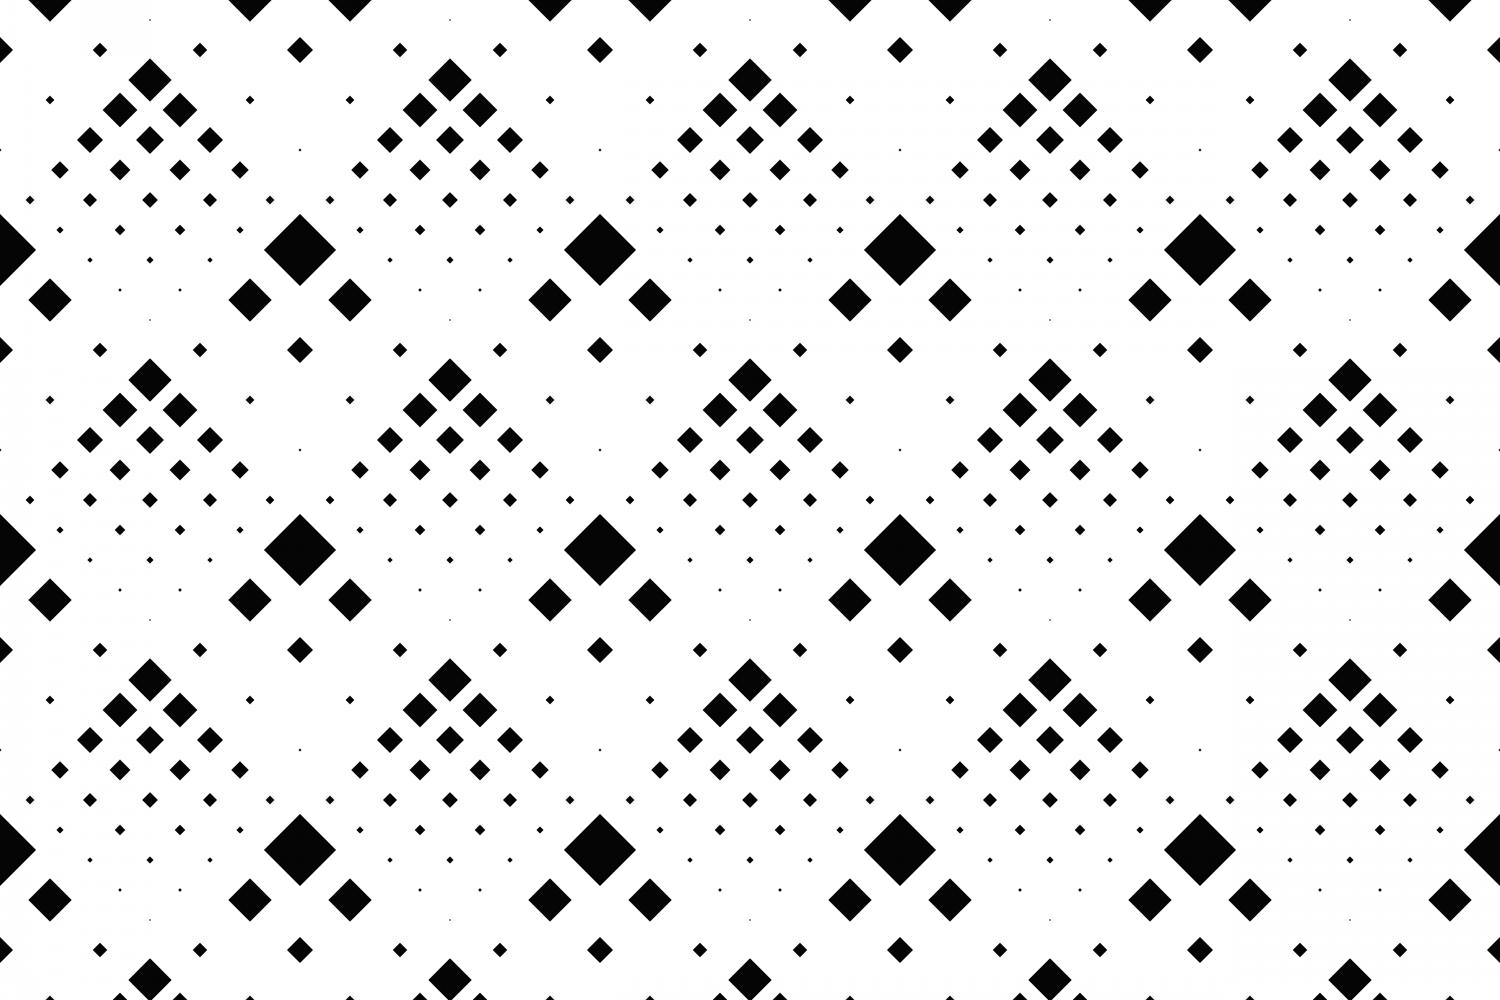 24 Seamless Square Patterns example image 7